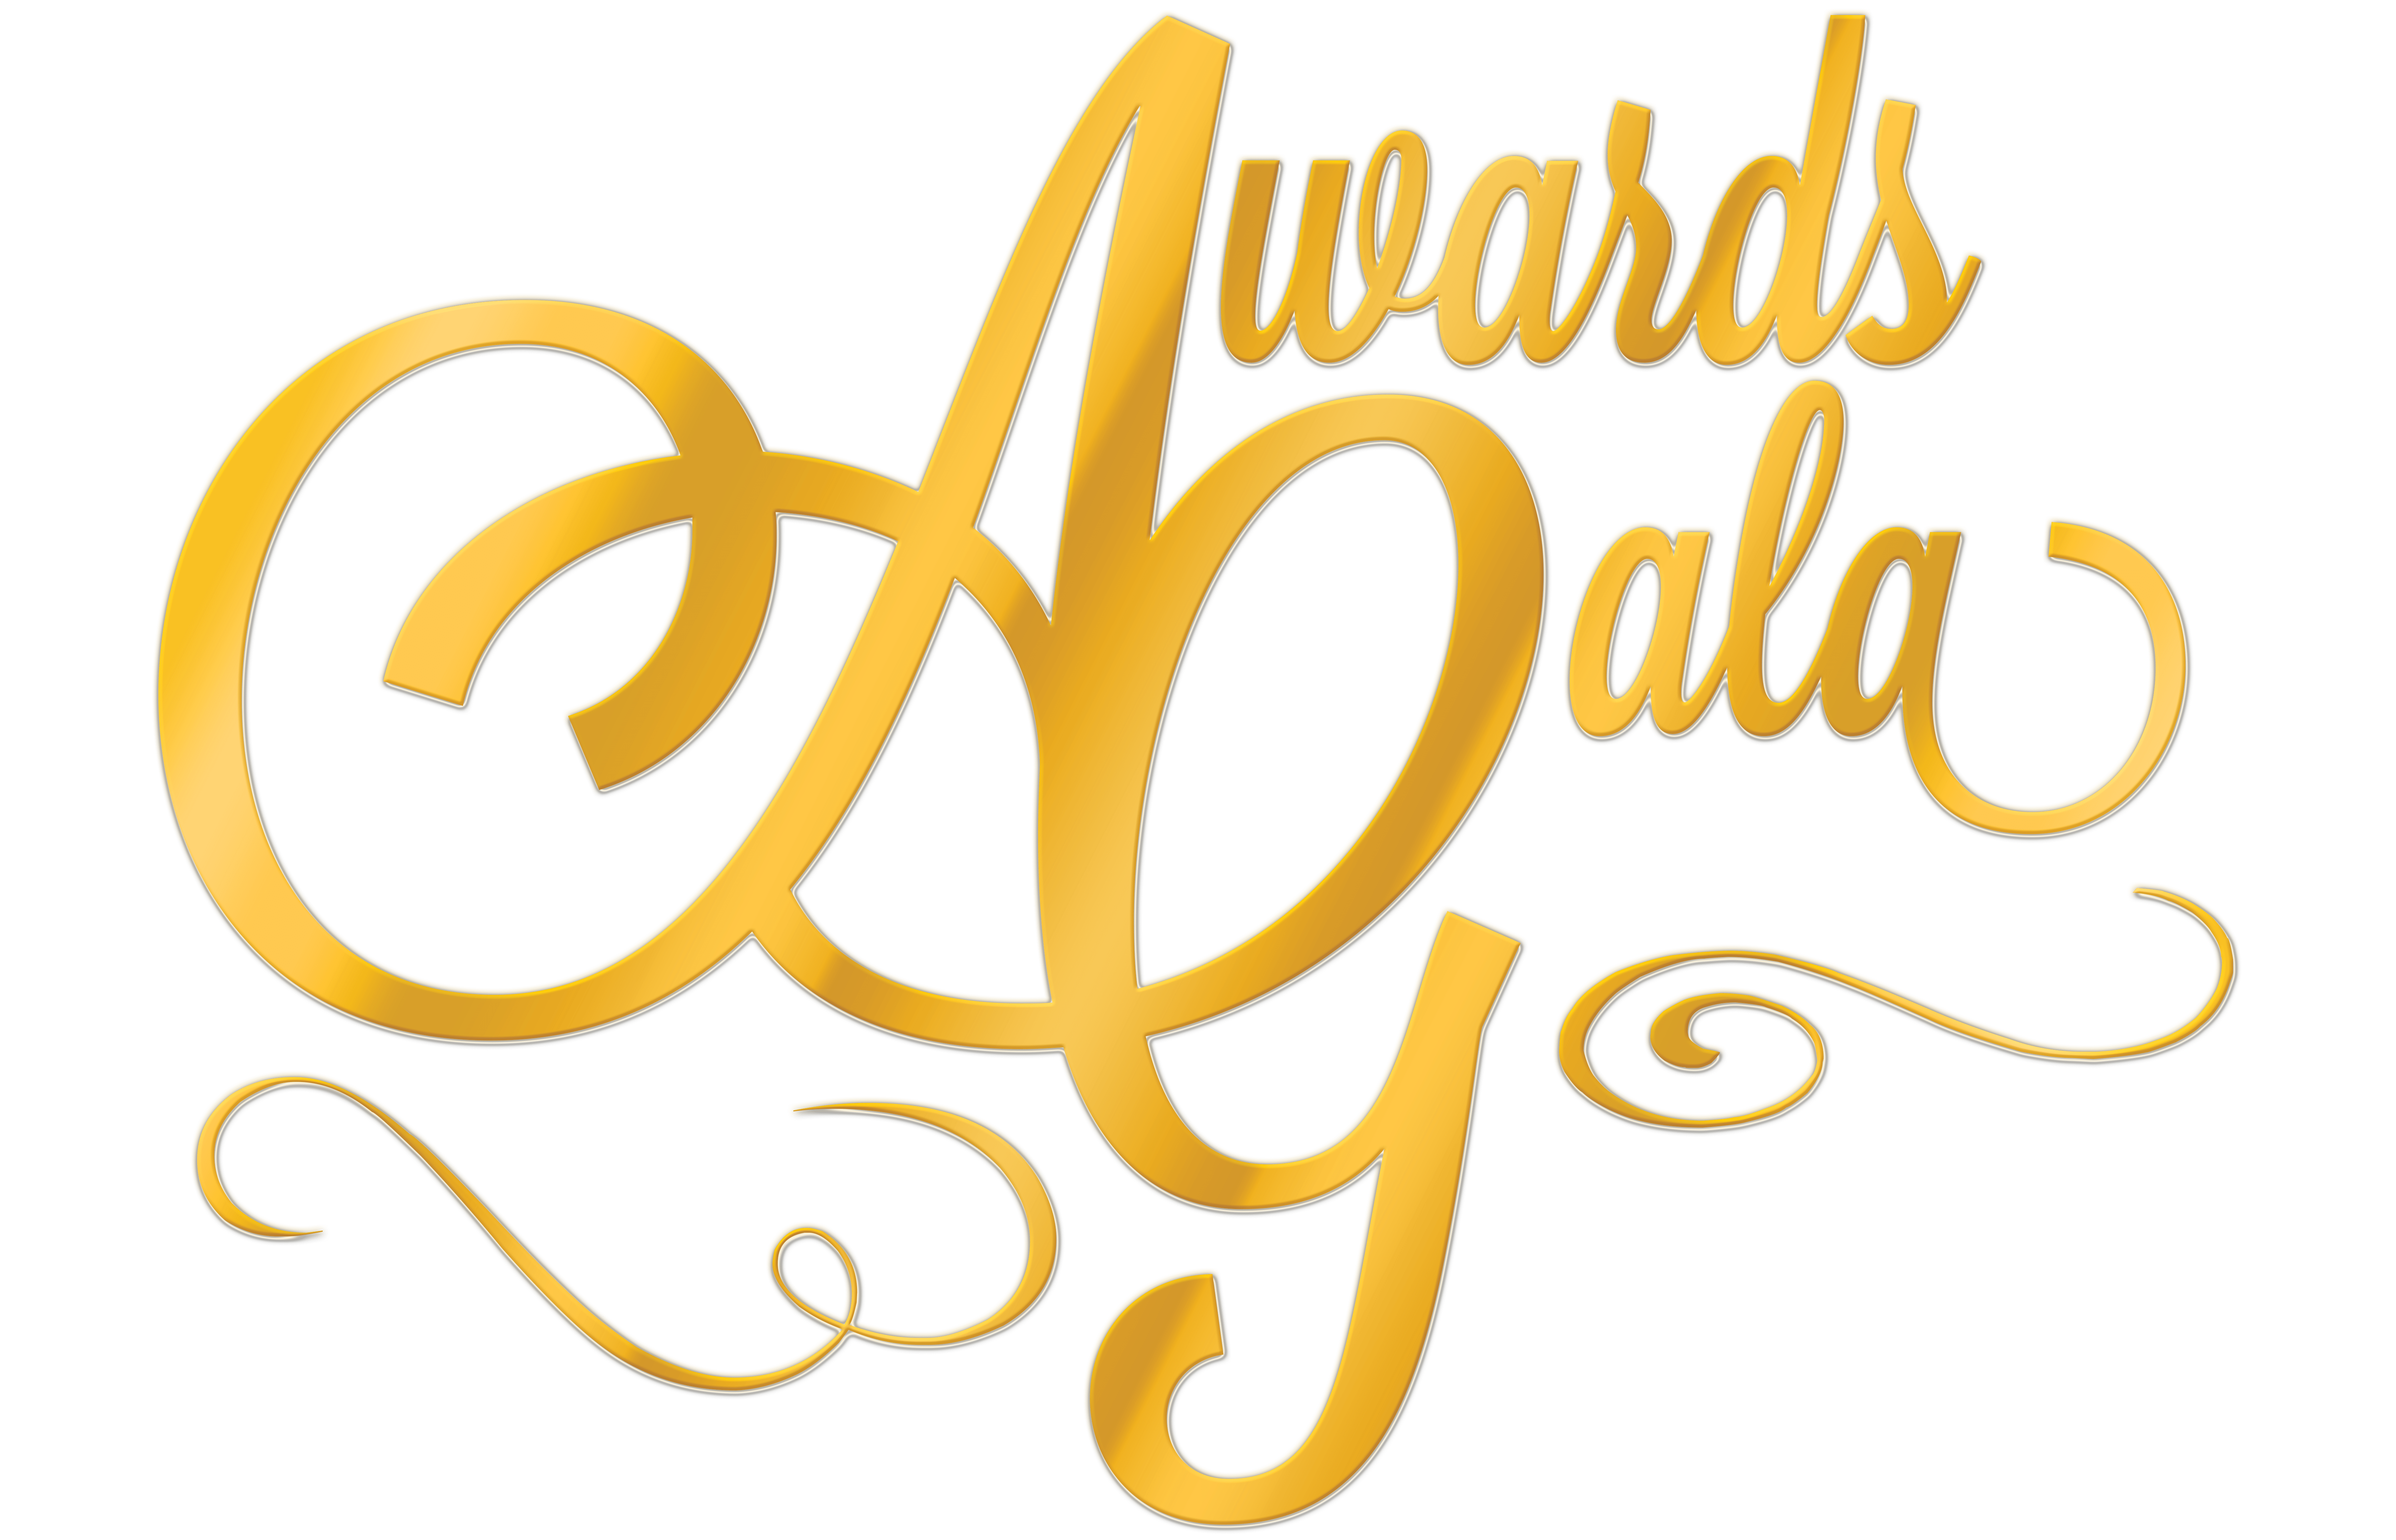 Logo for Awards Gala